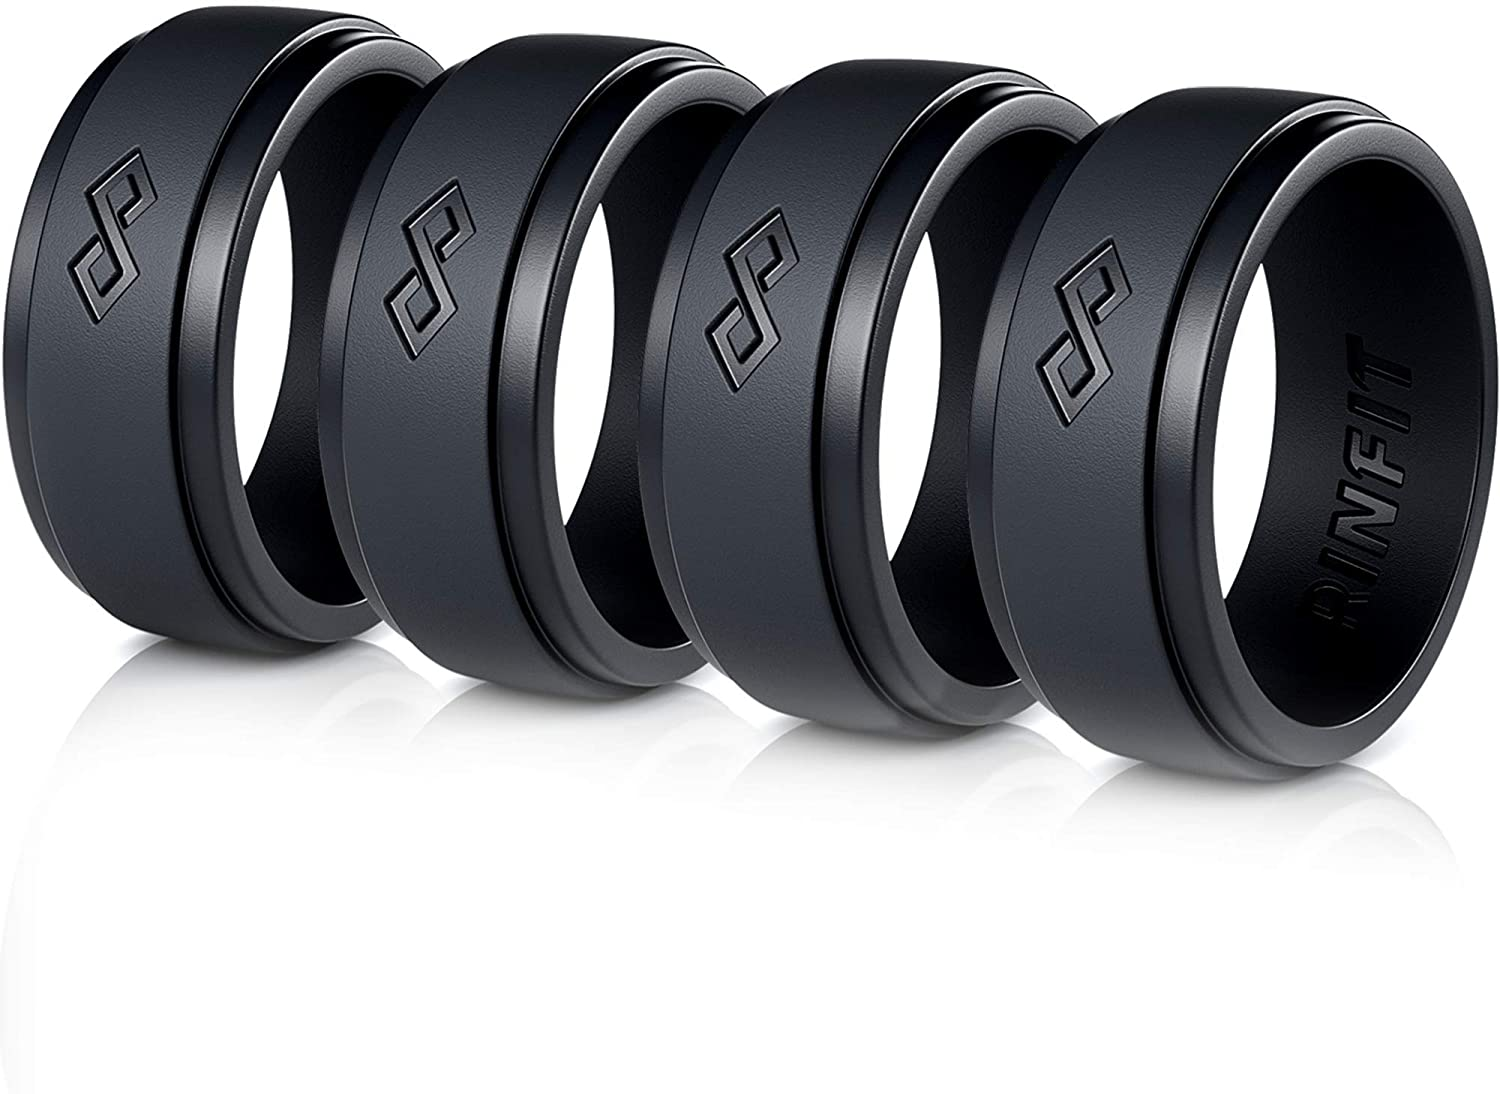 RinFit Silicone Wedding Ring for Men. 1/3/4/7 Rings Pack. Designed, Safe & Soft Men's Silicon Rubber Bands. Sizes 7-14 (12, Black, Black, Black, Black)